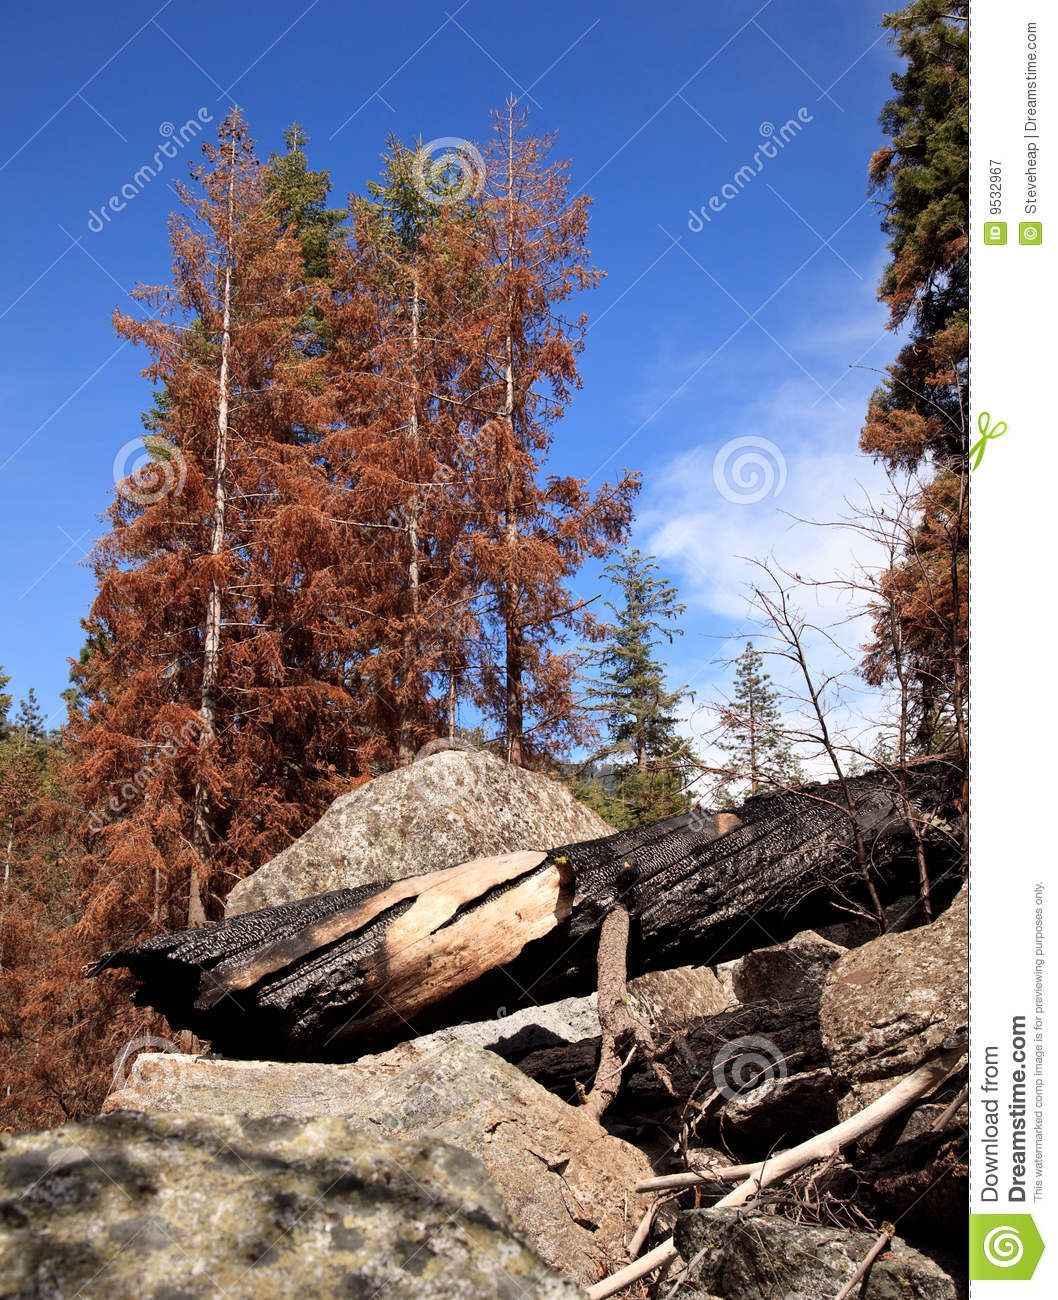 Scorched trees after forest fire